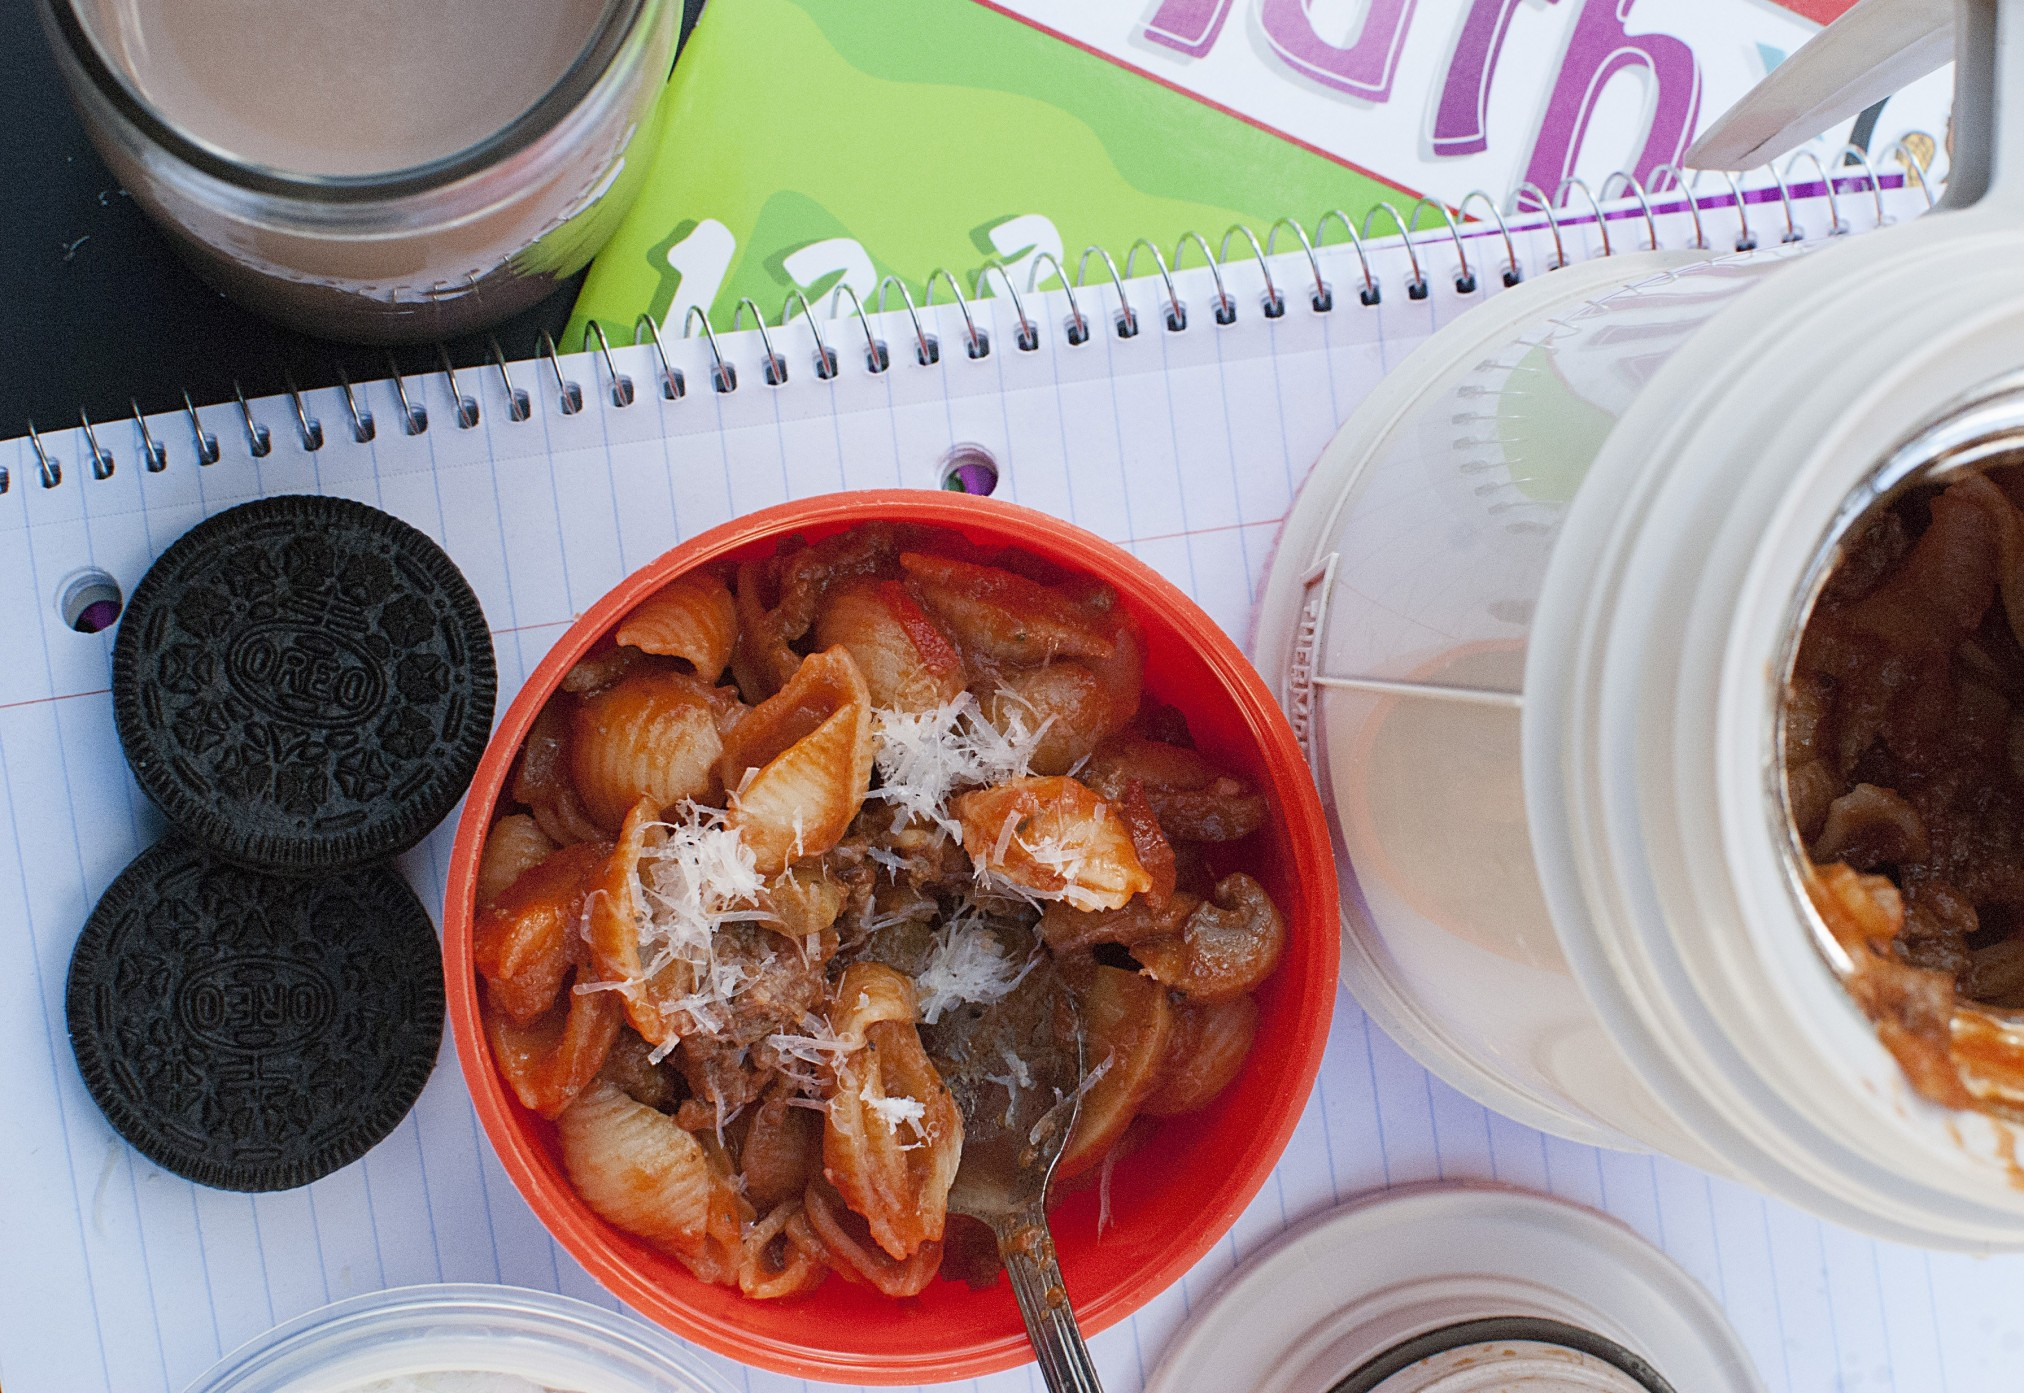 Hot Lunch Weekly Recipe from April Golightly